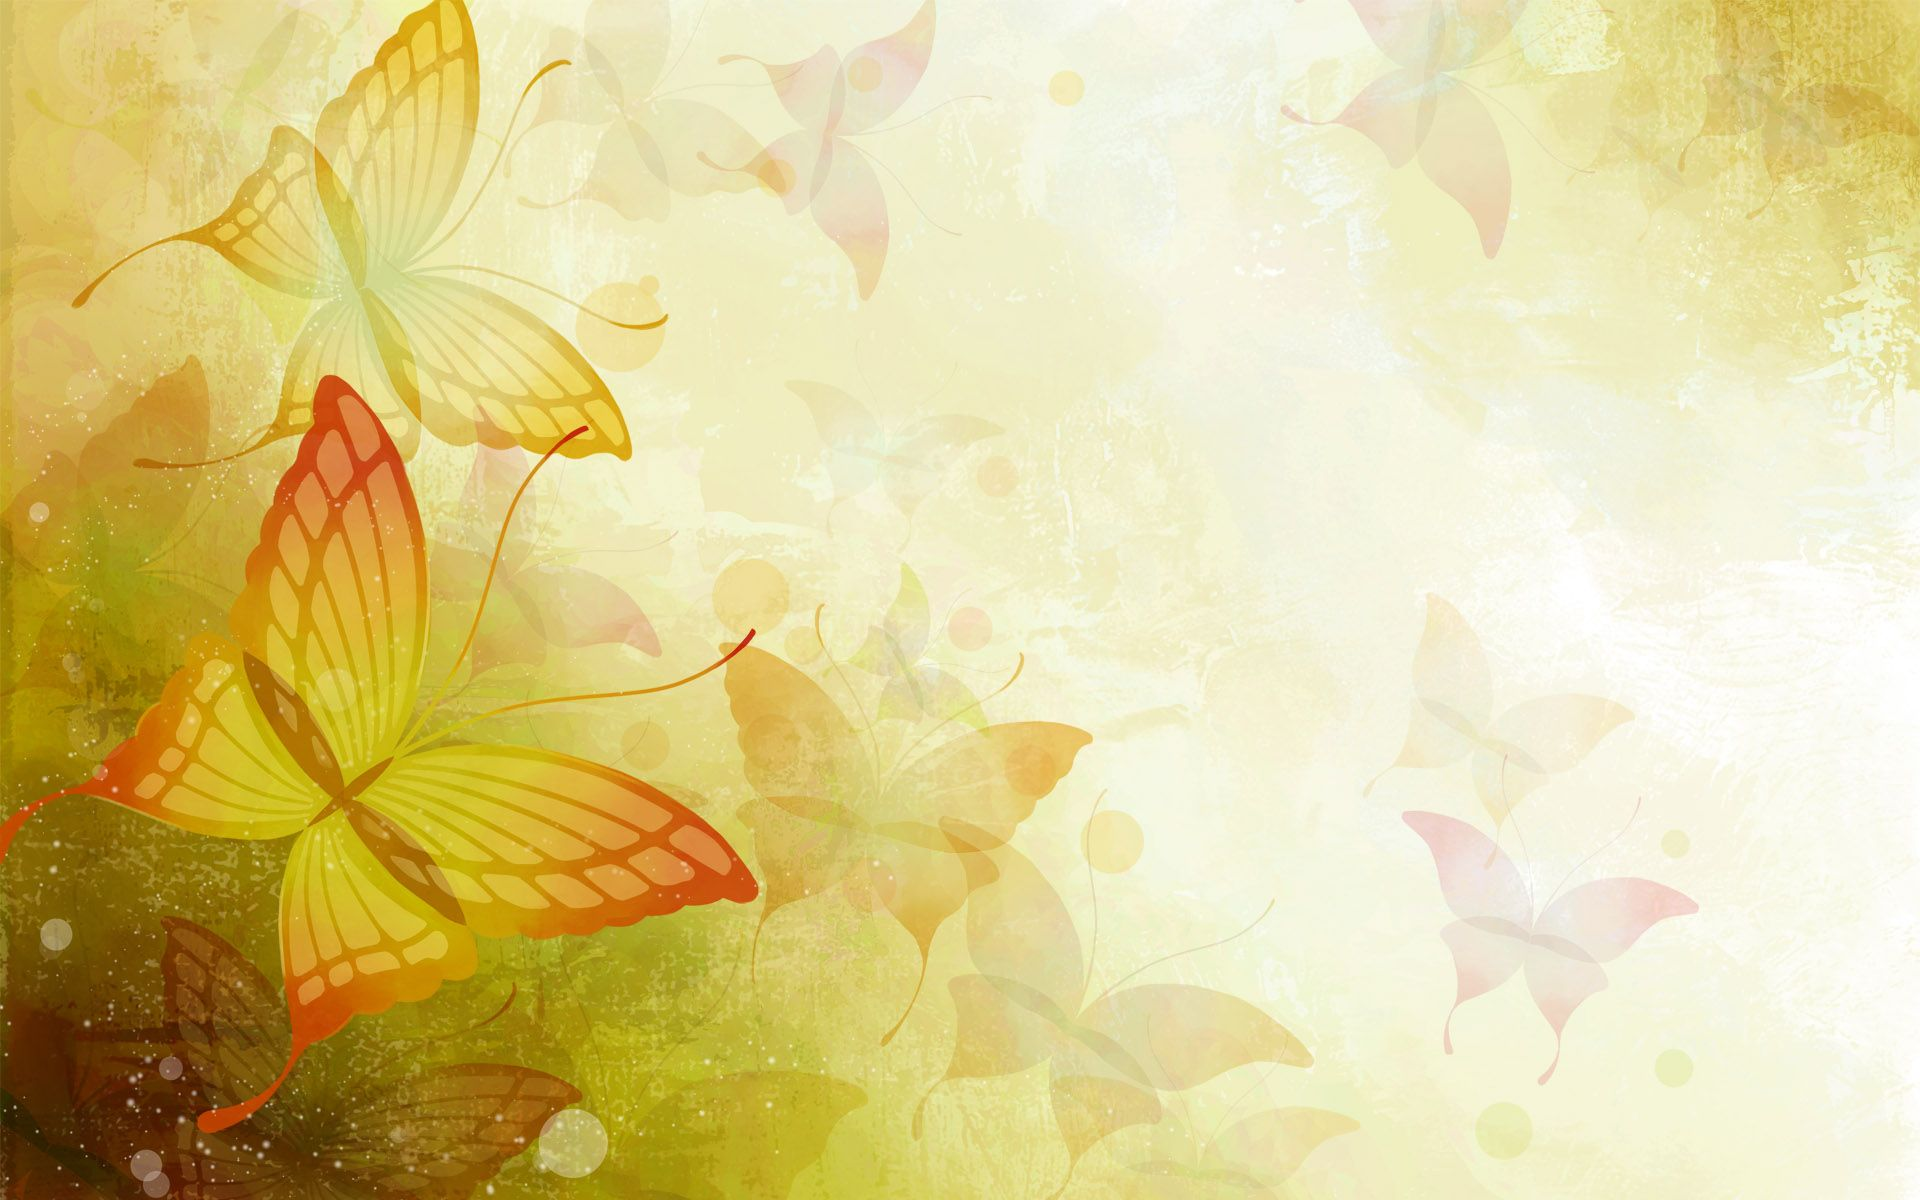 Flower butterfly autumn backgrounds for powerpoint templatesg flower butterfly autumn backgrounds for powerpoint templatesg toneelgroepblik Choice Image